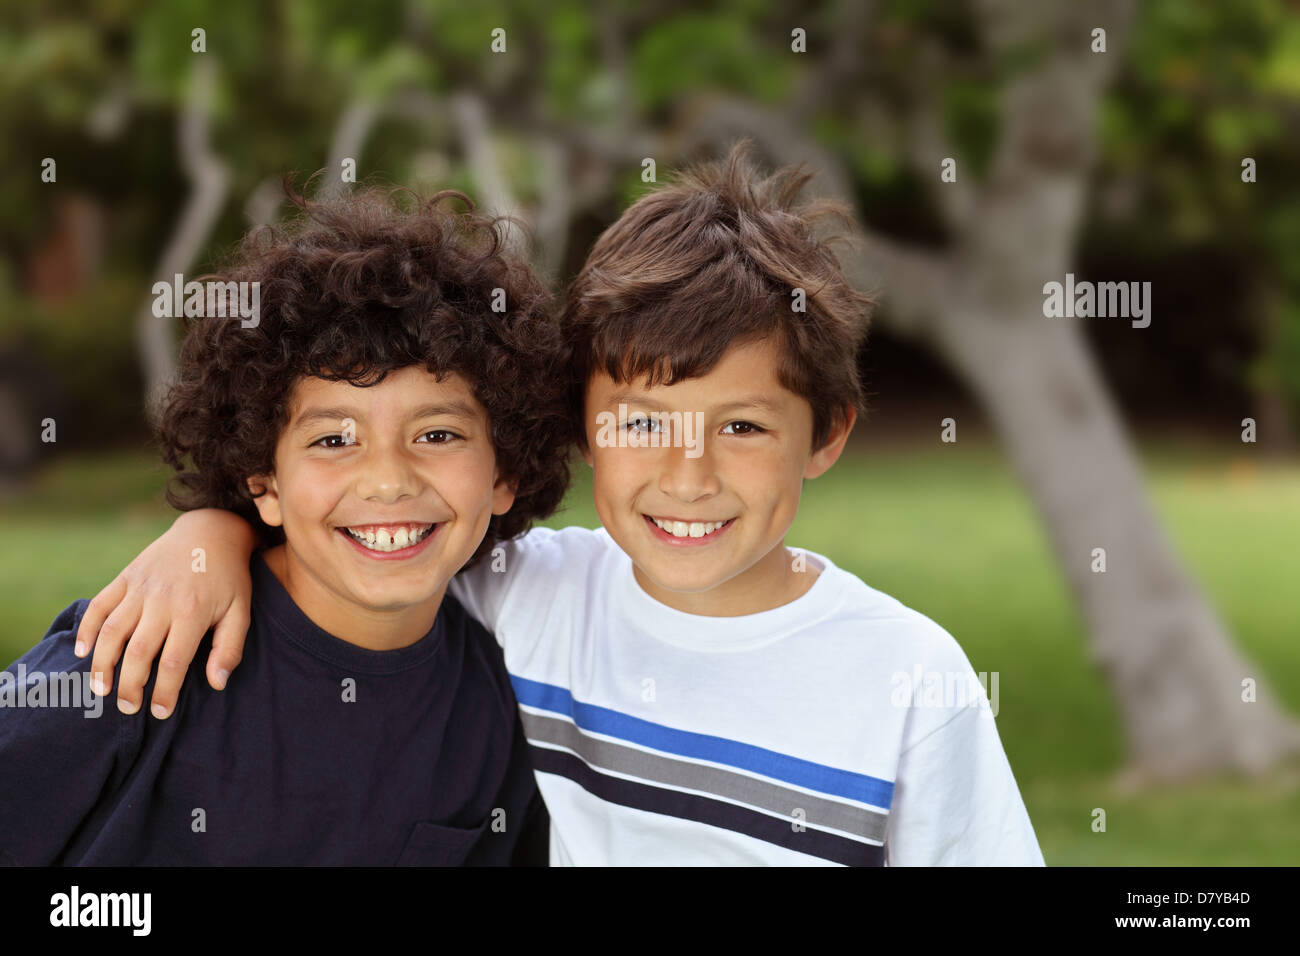 Two smiling happy young mixed race boys outside - Stock Image